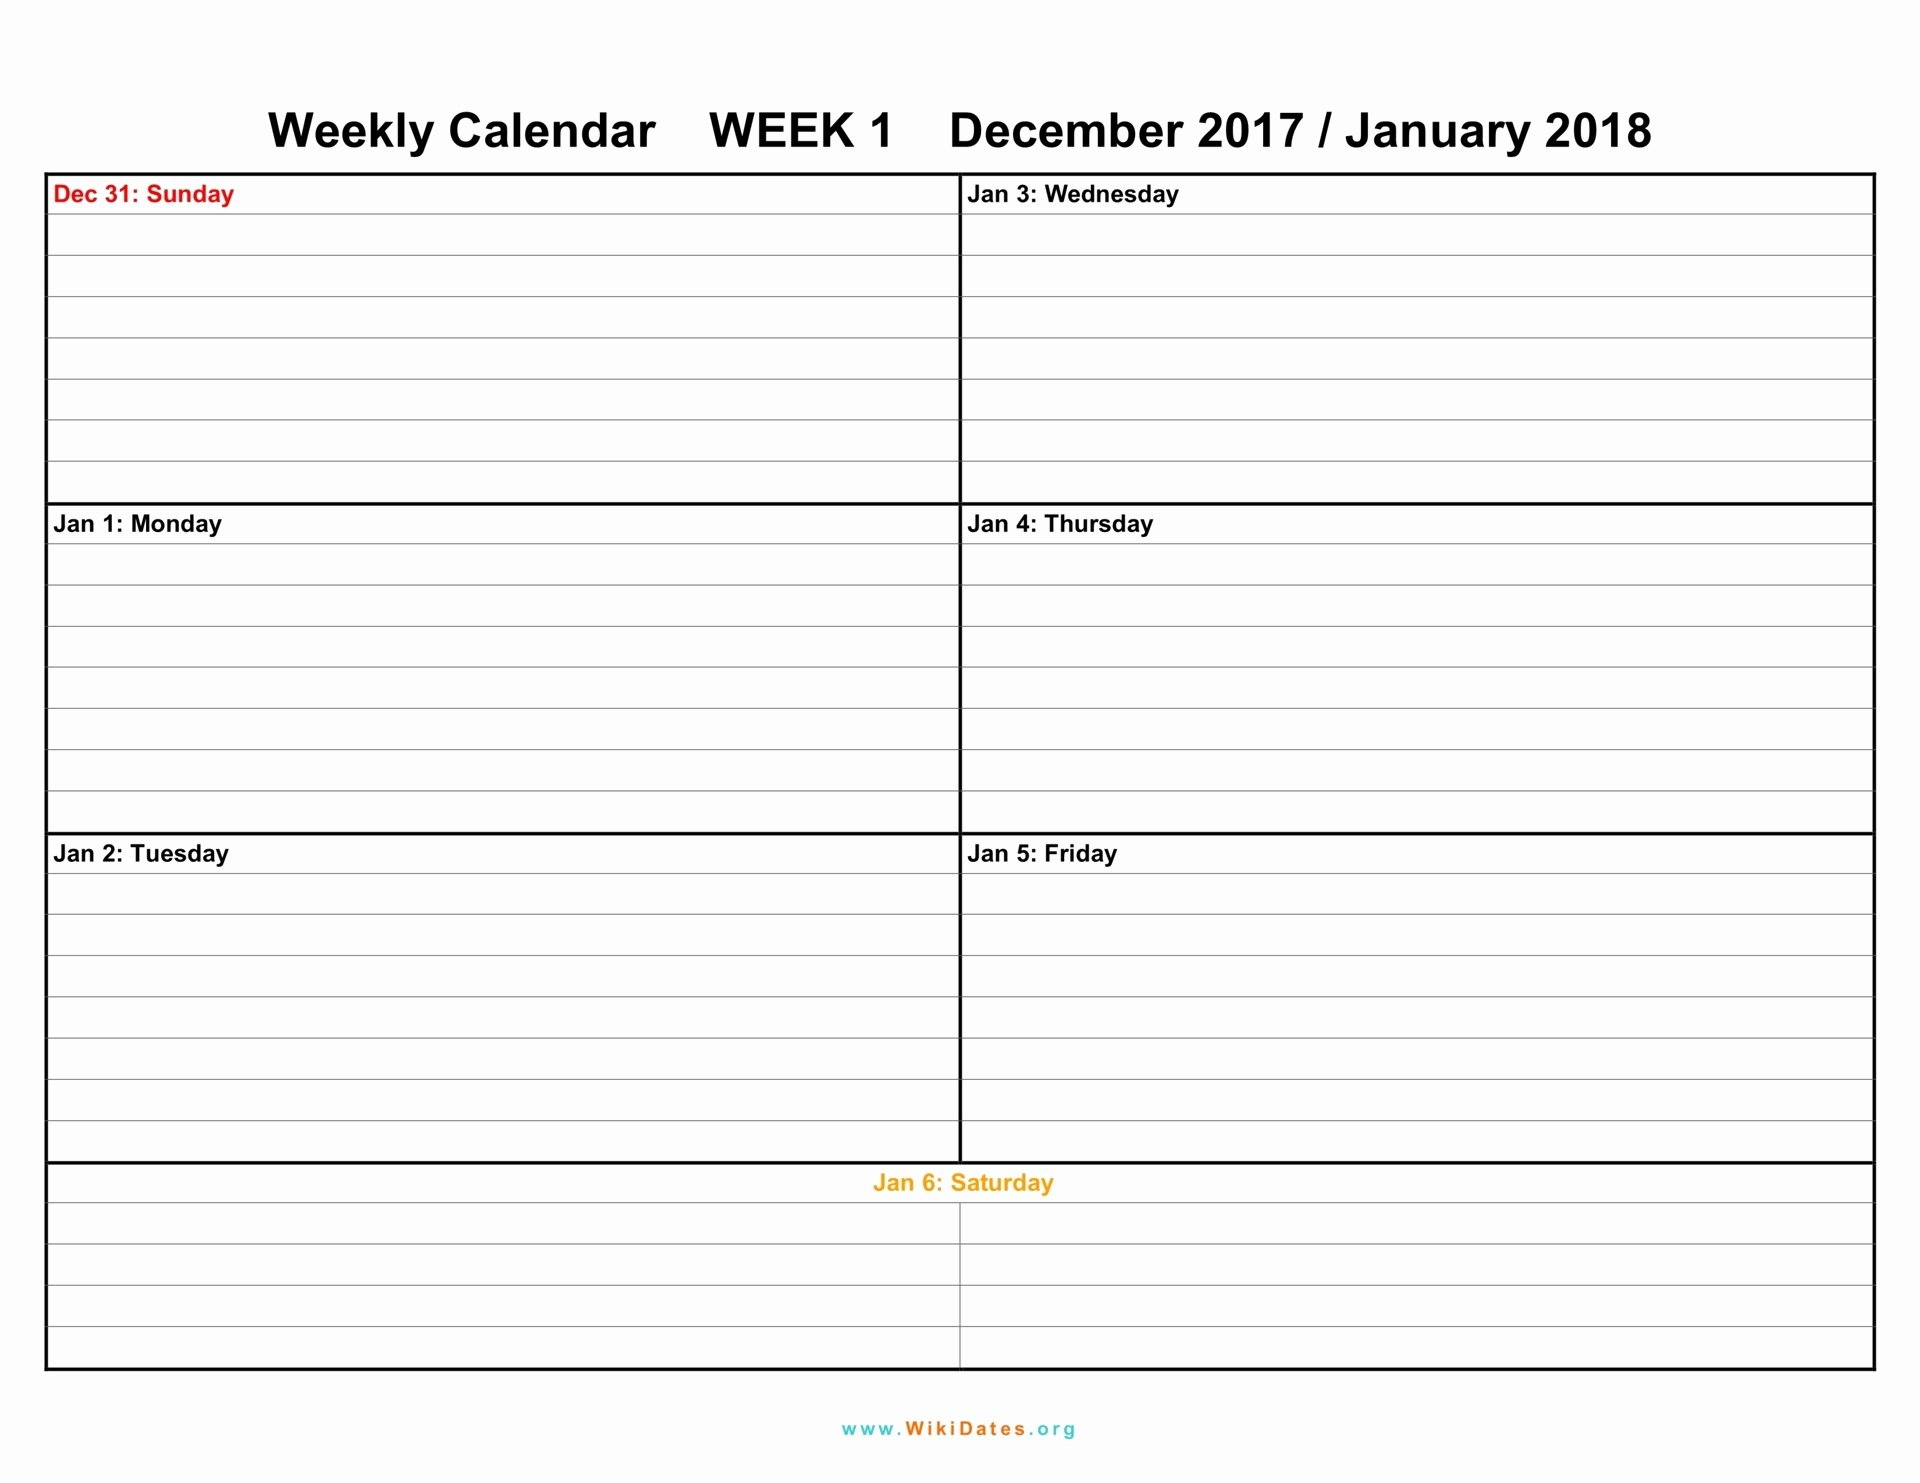 Week Schedule Template Pdf Fresh Weekly Calendar Download Weekly Calendar 2017 and 2018